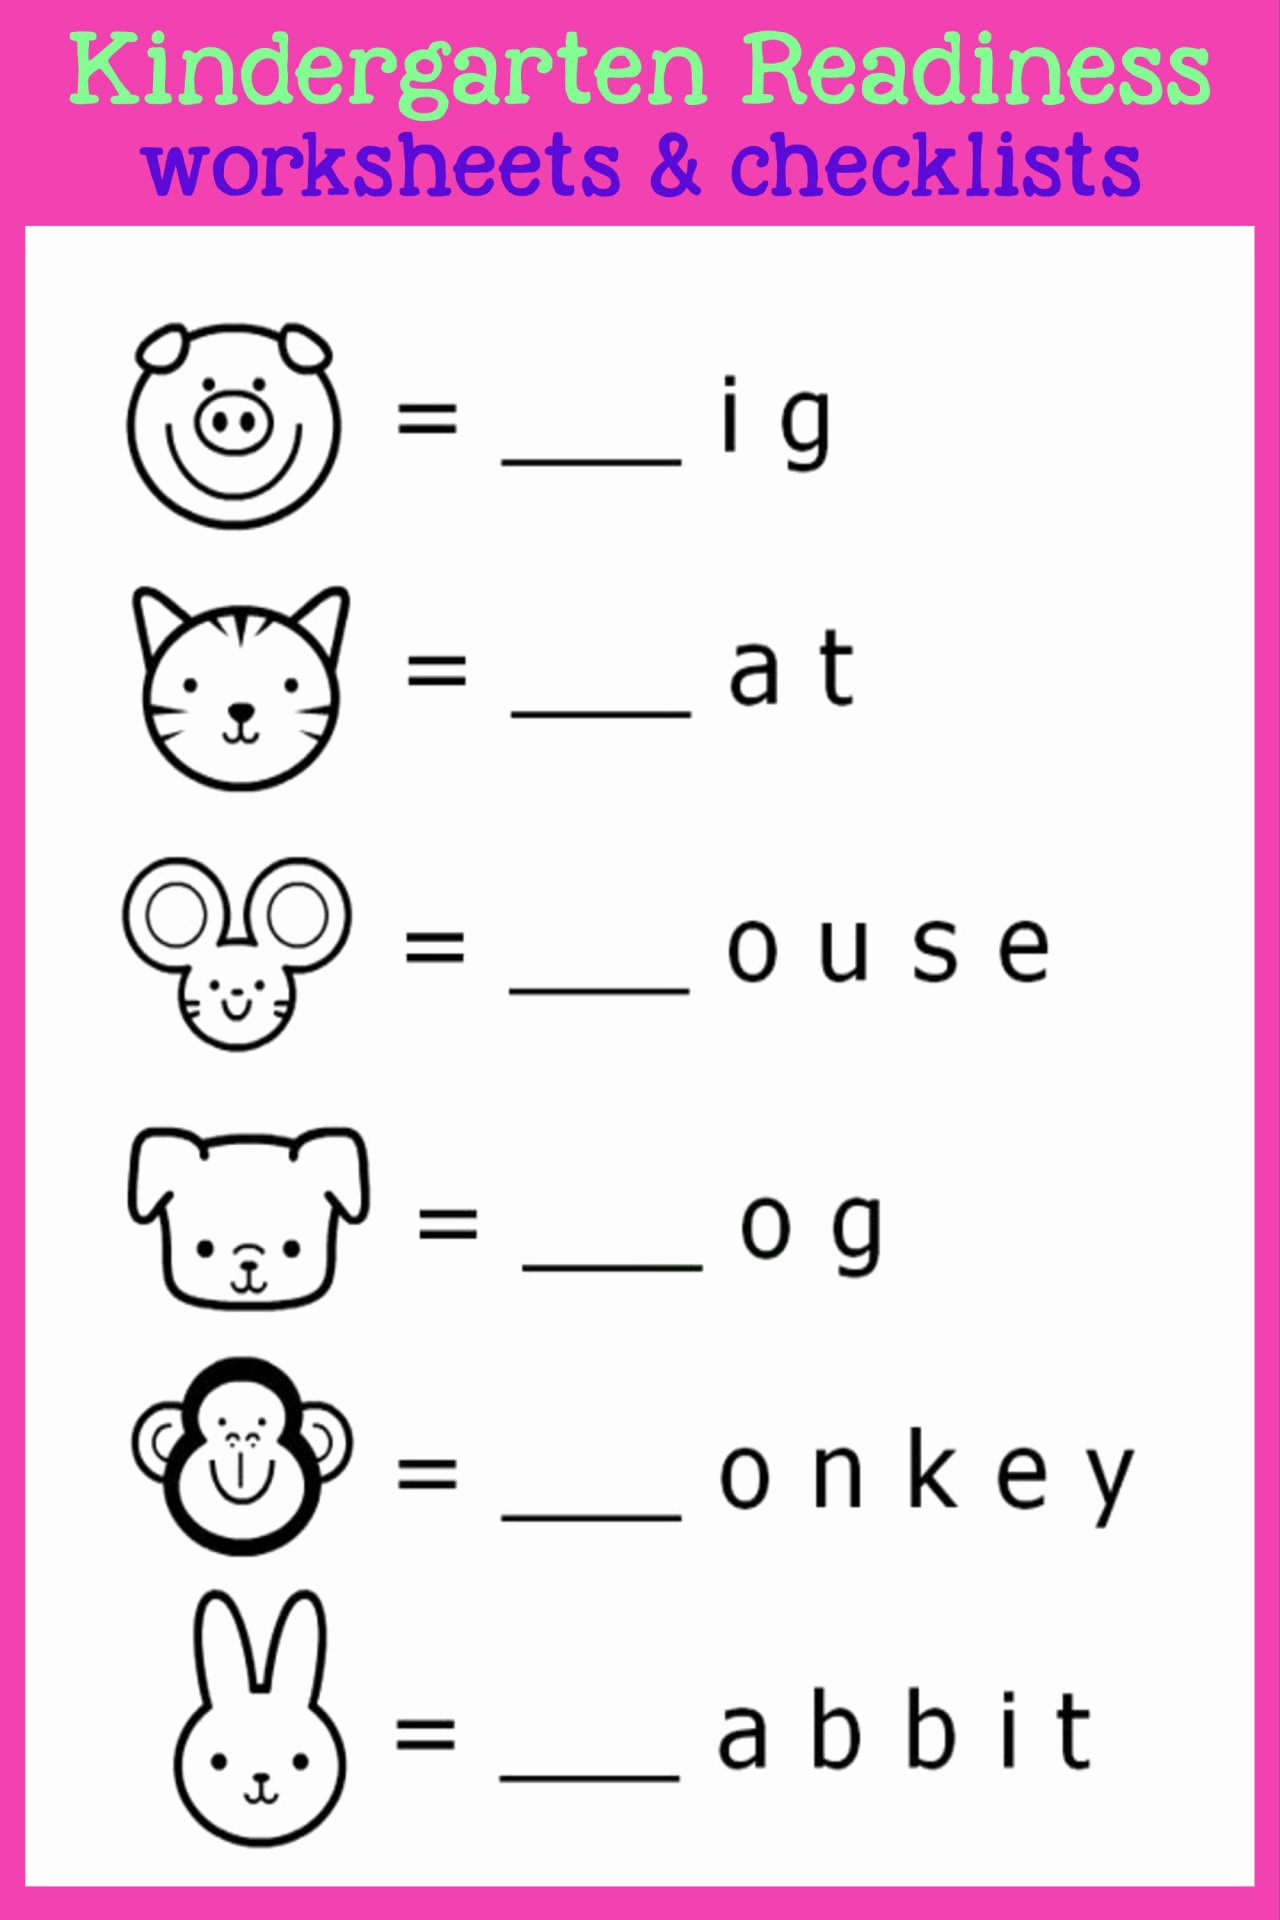 Free Educational Worksheets for Preschoolers Inspirational Math Worksheet Educational Printable Worksheets Free